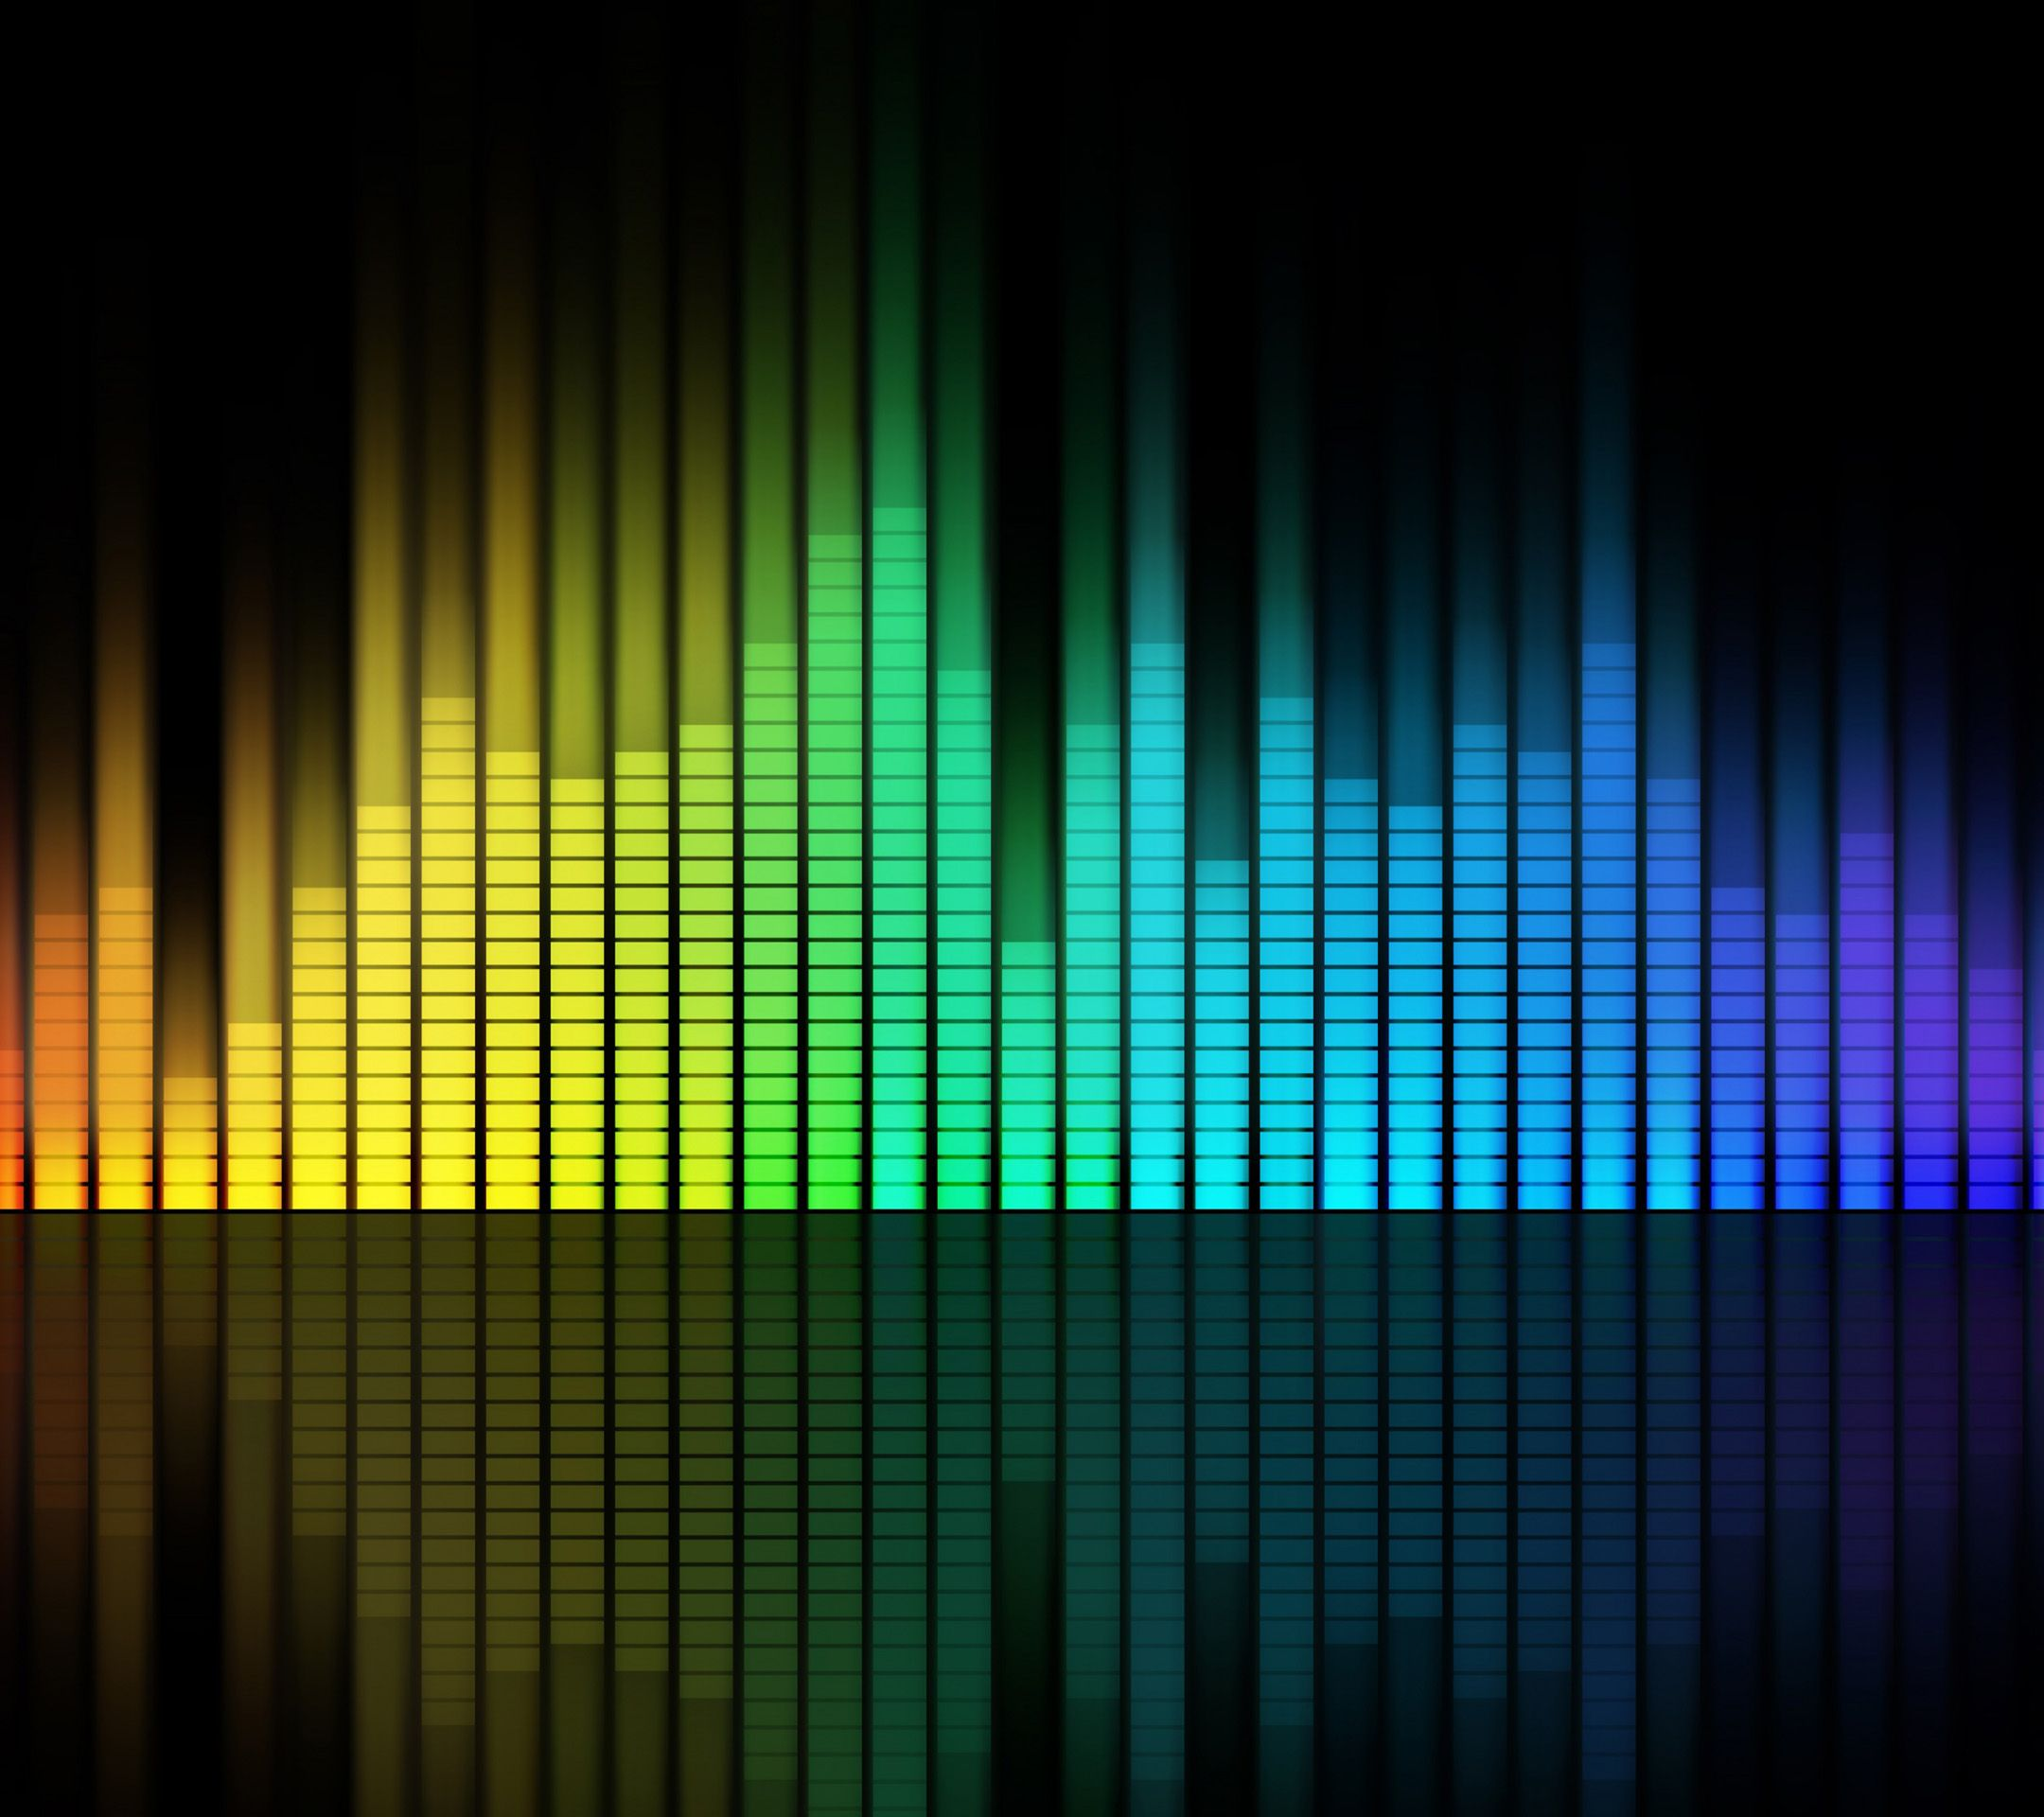 Colouring Music Equalizer Wallpapers for the iPhone 4